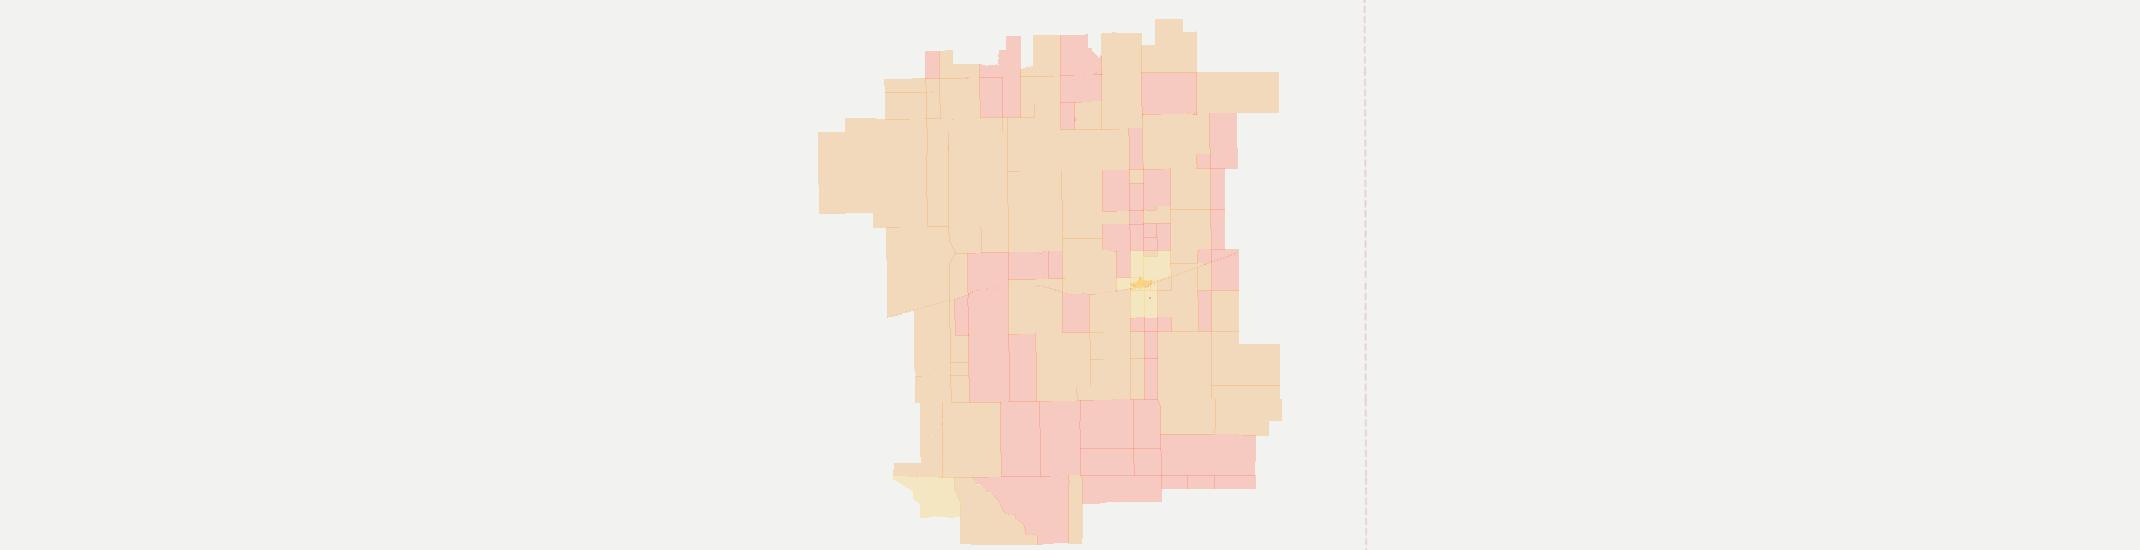 Cheyenne Wells Internet Competition Map. Click for interactive map.